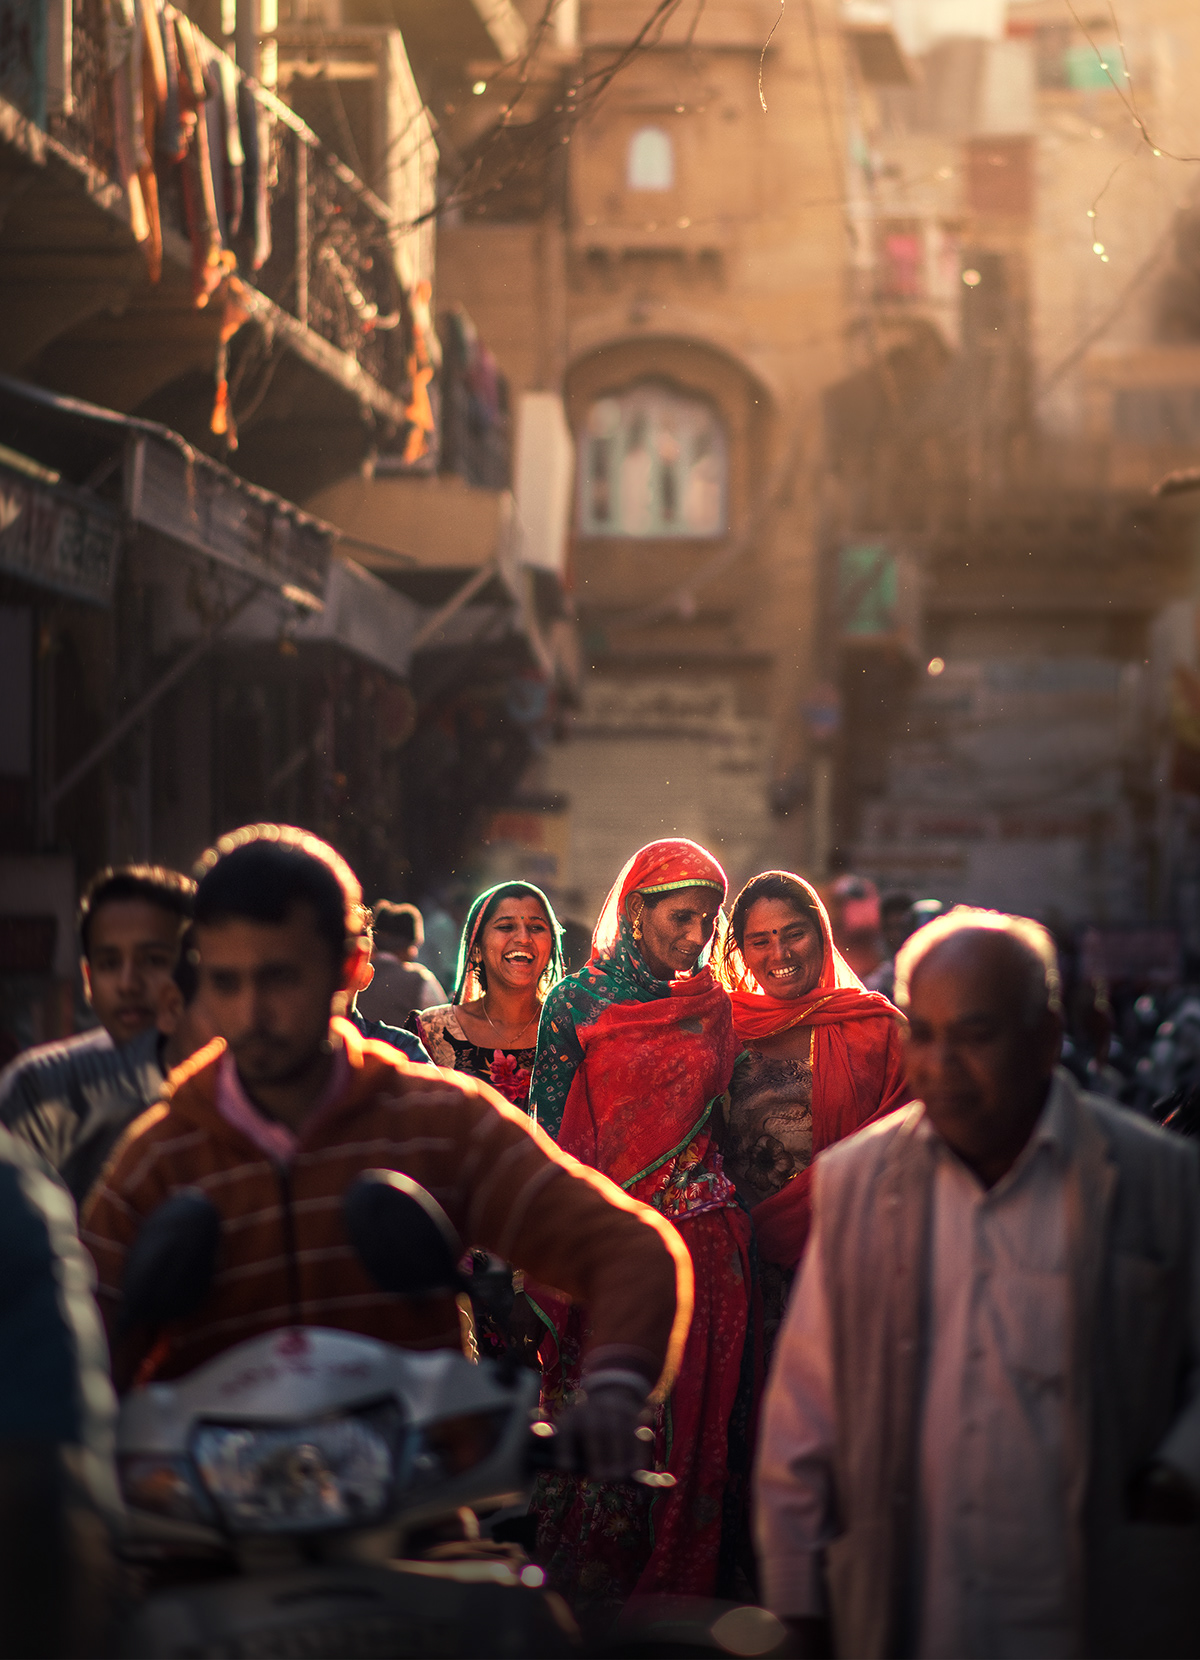 Three women smiling and passing in sunlit street in Jaisalmer India photography by Ashraful Arefin